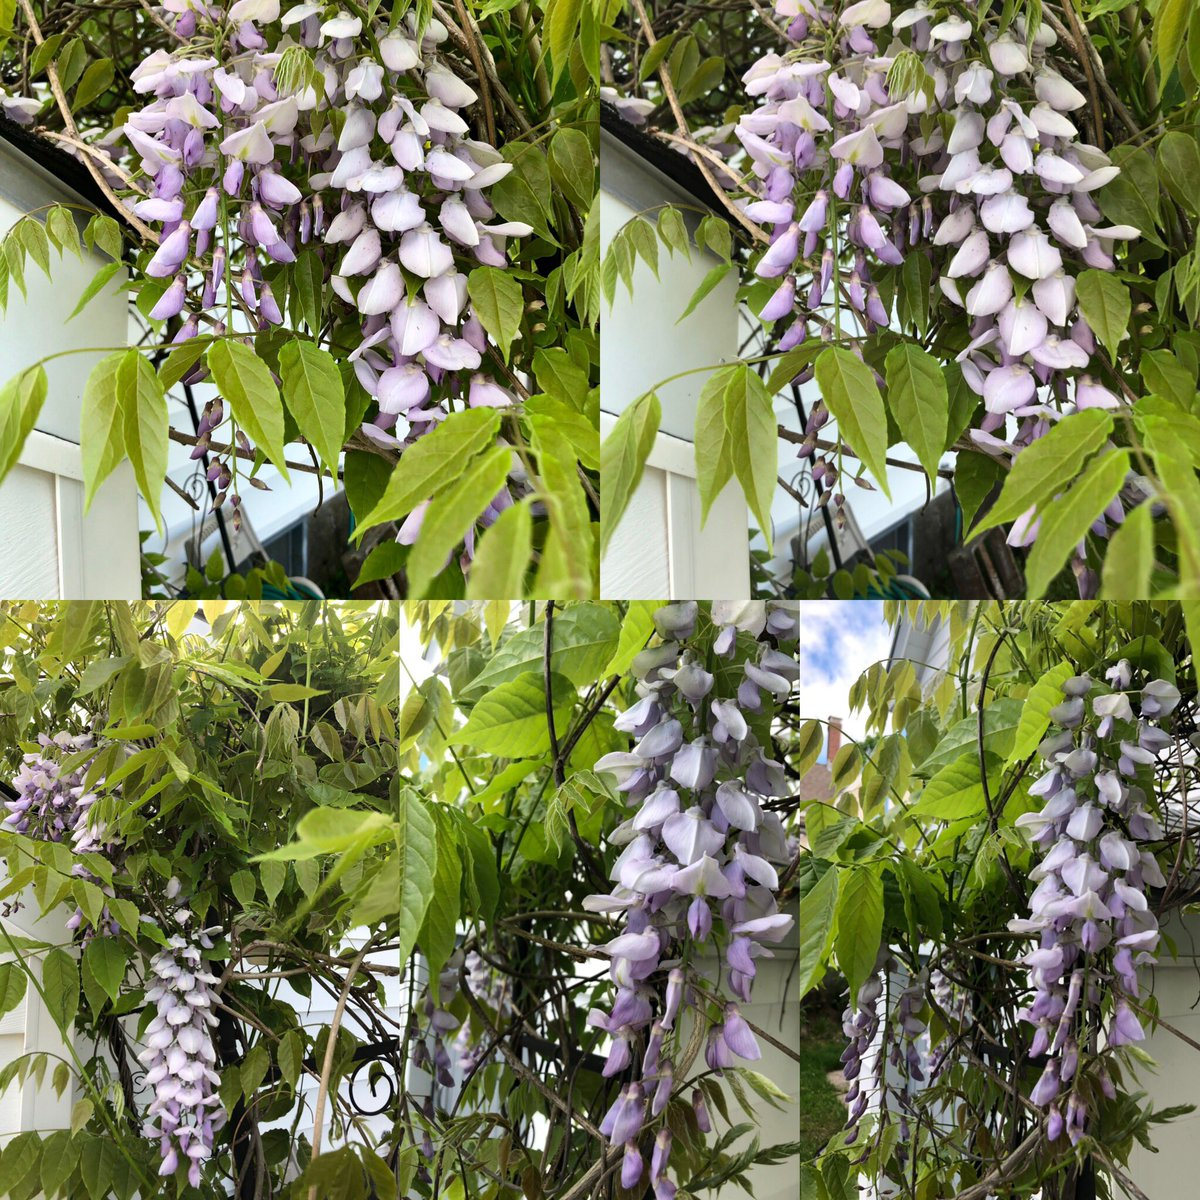 One of my all time favorite flowers #wisteria <br>http://pic.twitter.com/anrUVmi5HC